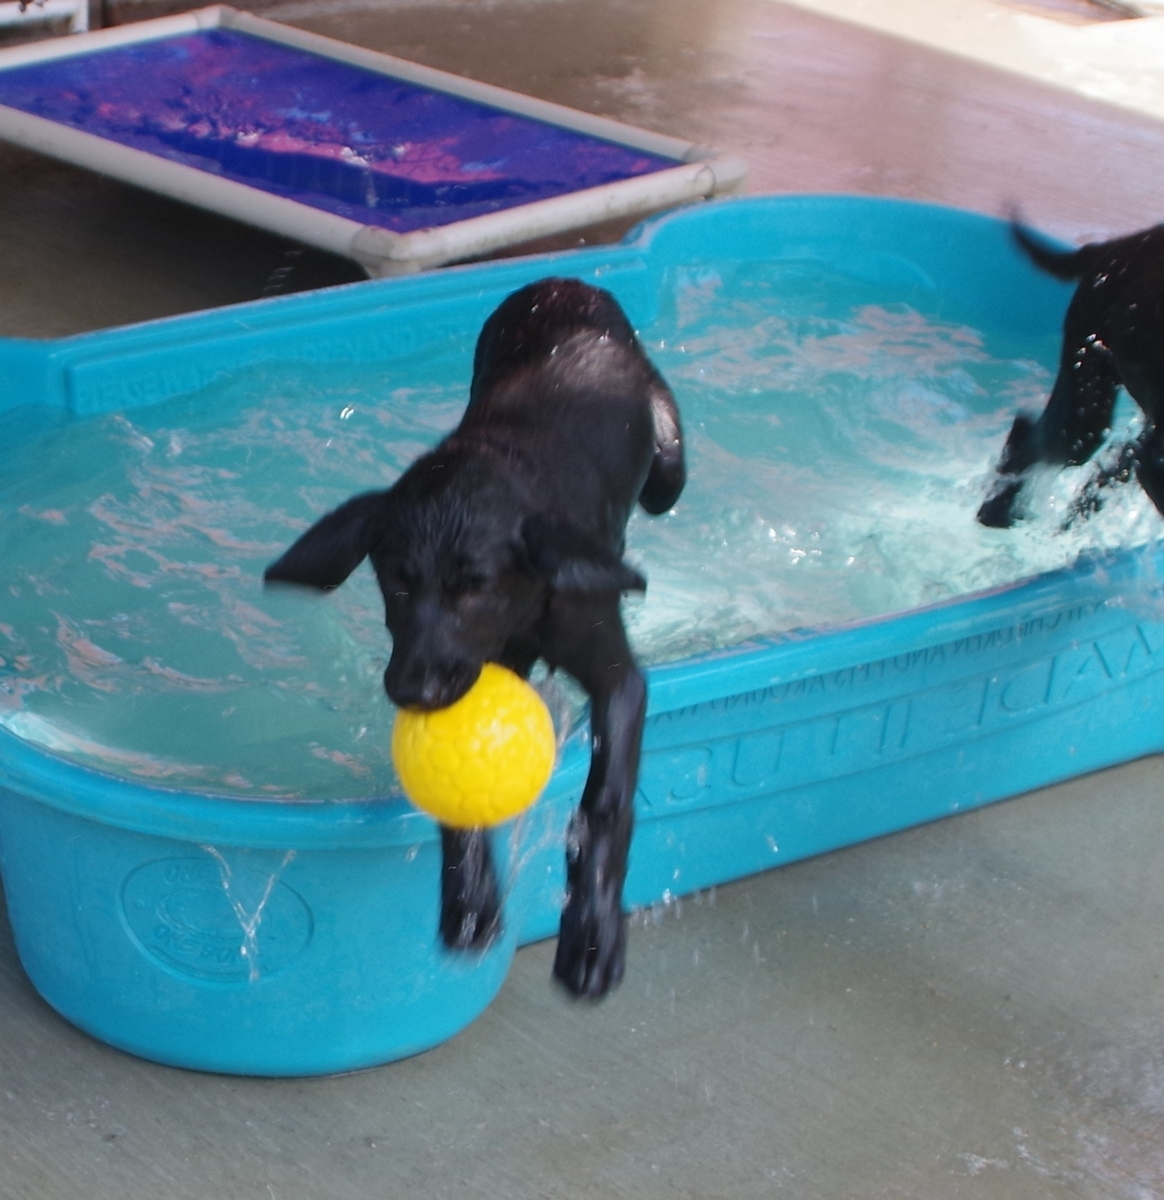 fetching the ball out of the puppy pool